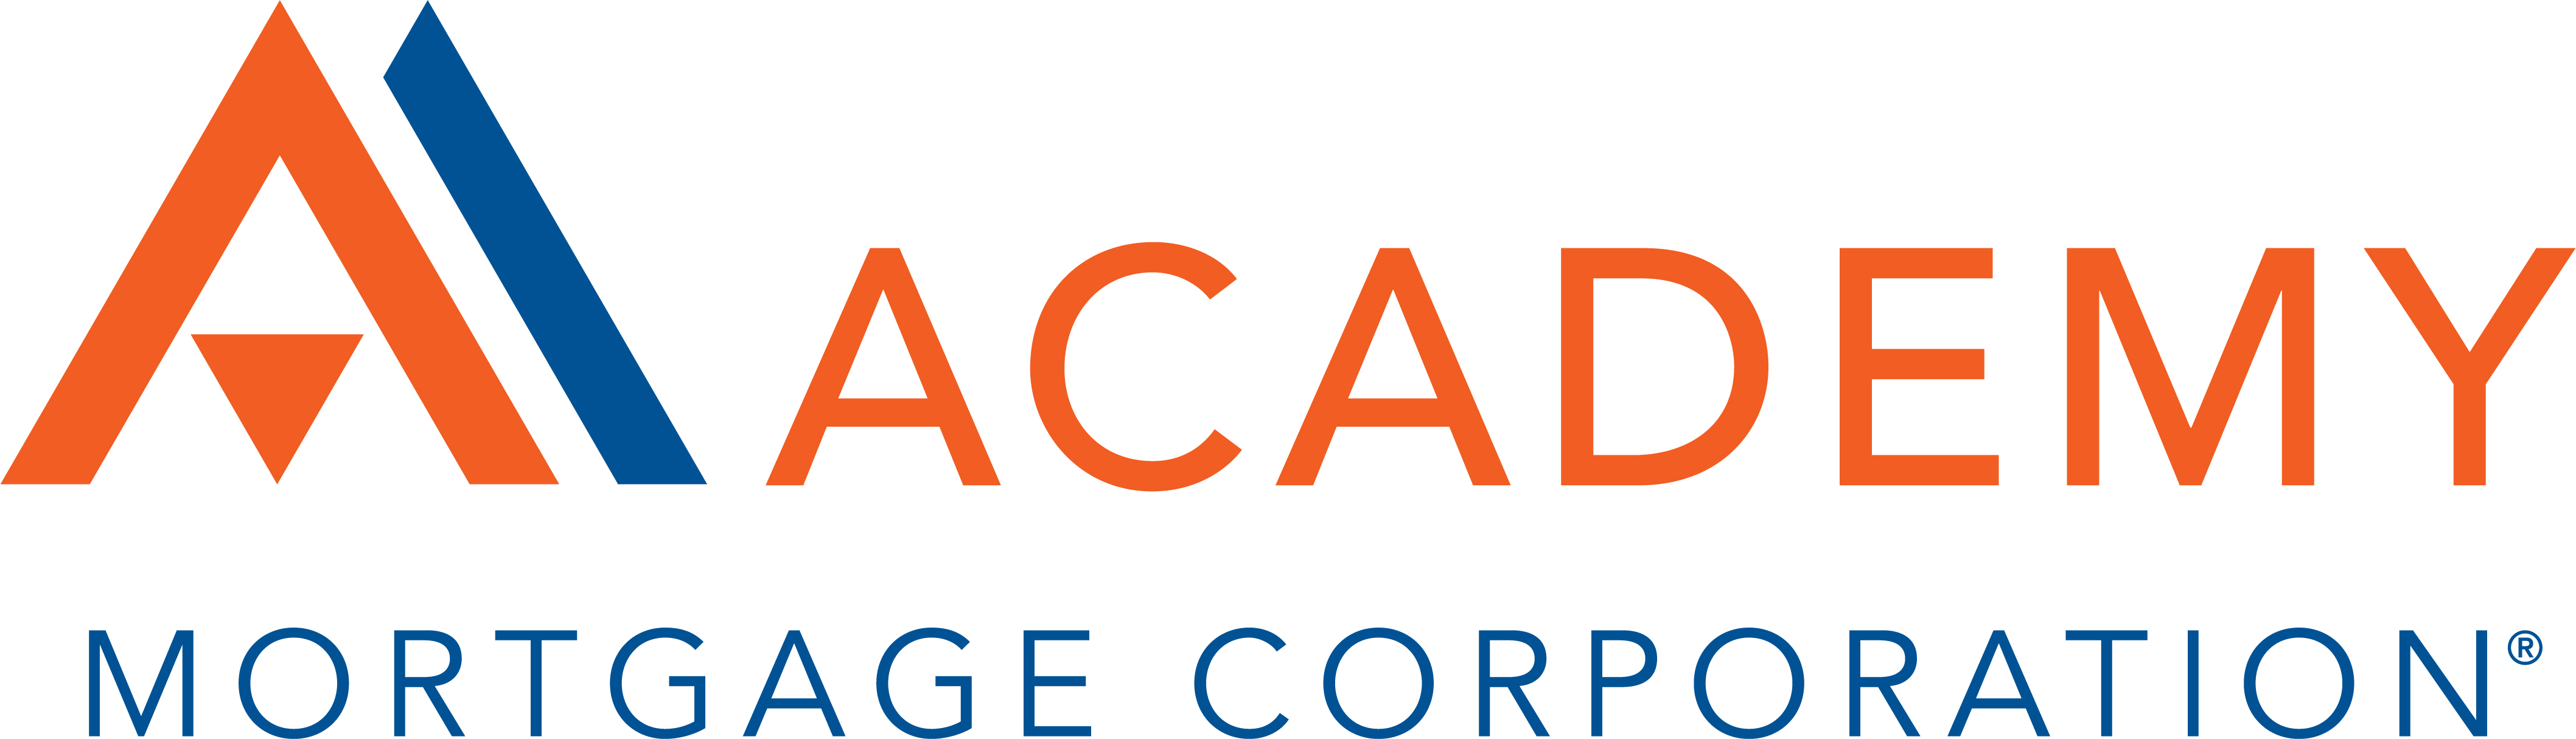 https://growthzonesitesprod.azureedge.net/wp-content/uploads/sites/564/2020/11/Academy-Logo-JPG.jpg